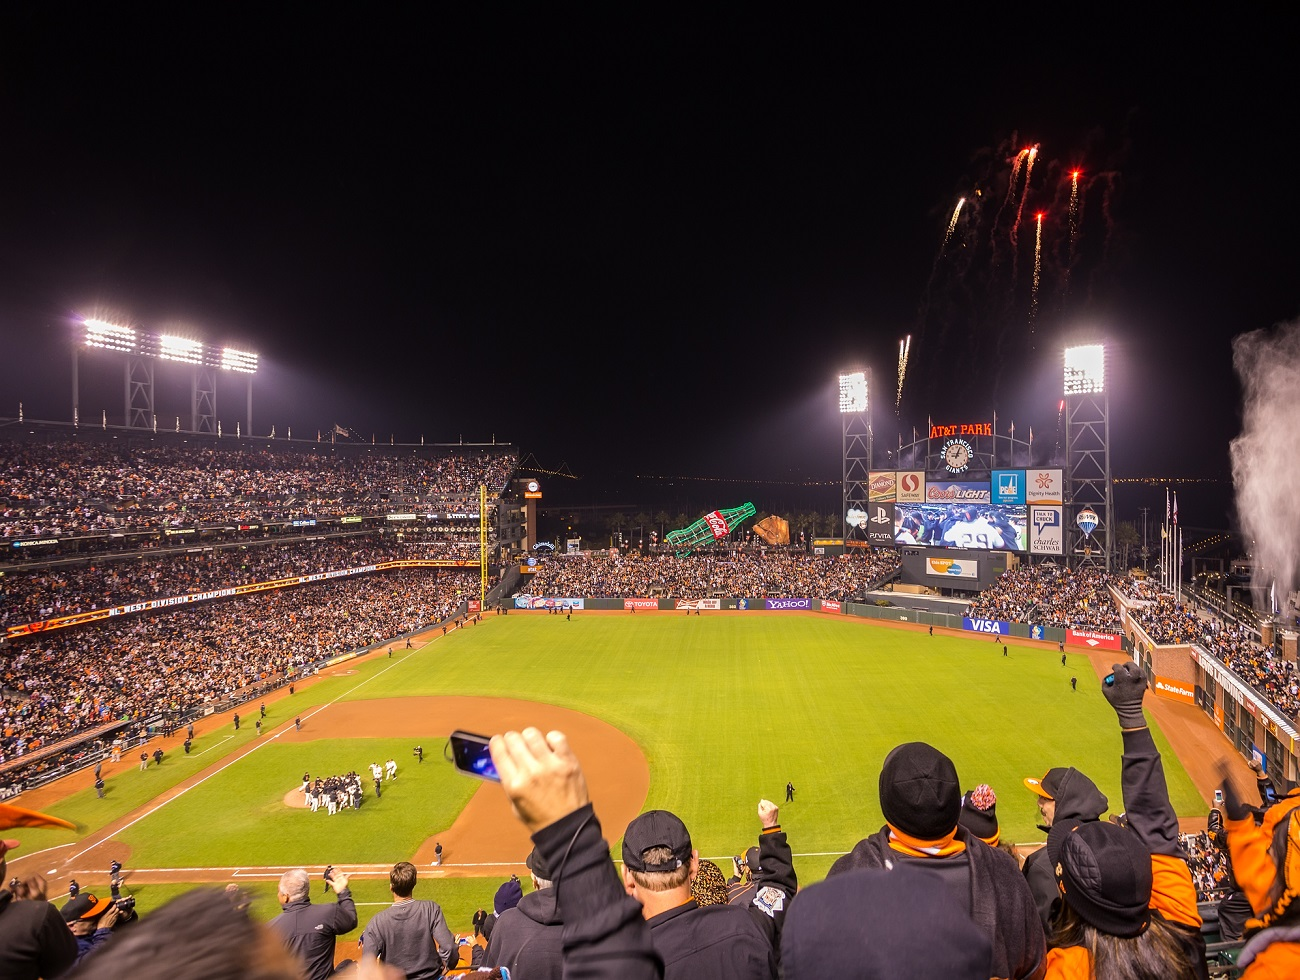 San Francisco Giants Winning